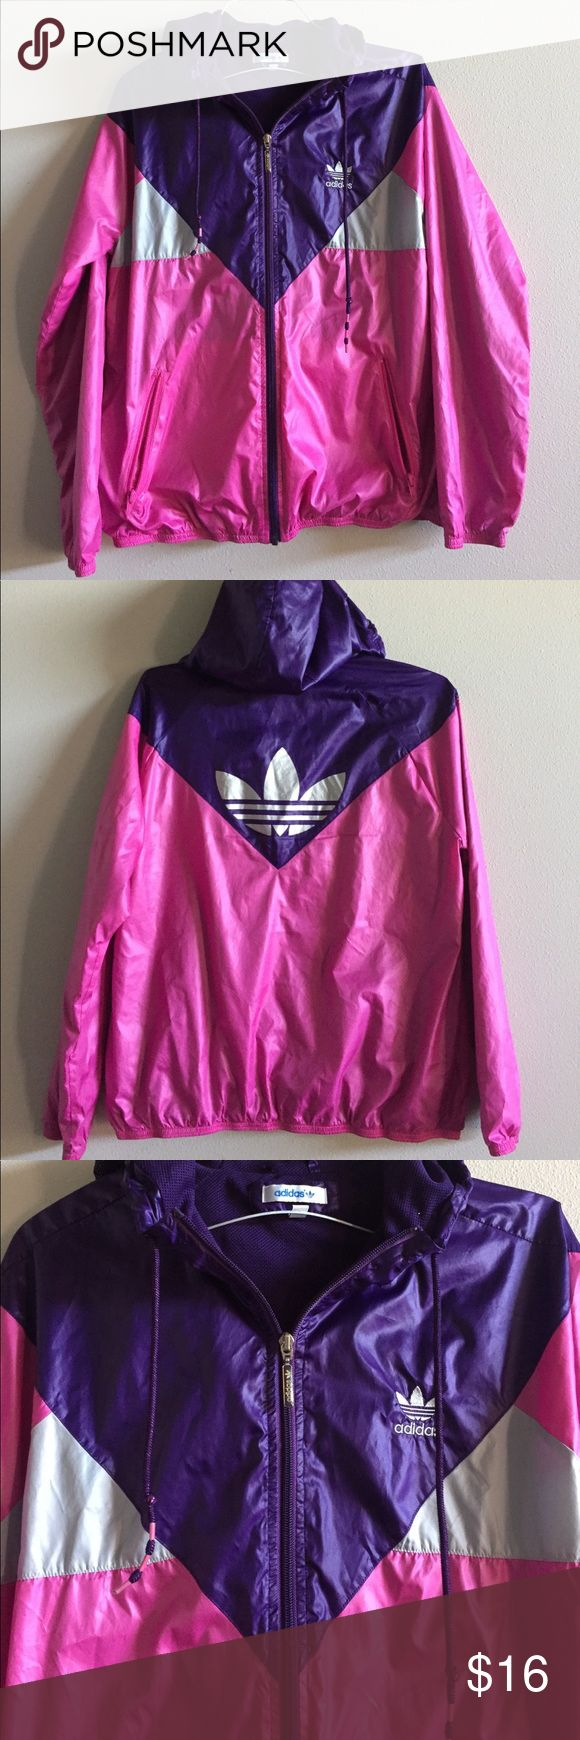 Women's Lightweight Adidas Jacket Size Large This adorable bright pink, purple and grey Adidas zip-up windbreaker is super stylish and in excellent condition. It features a large hood, two size pockets and super and comfortable material. Size Large, 100% polyester. adidas Jackets & Coats